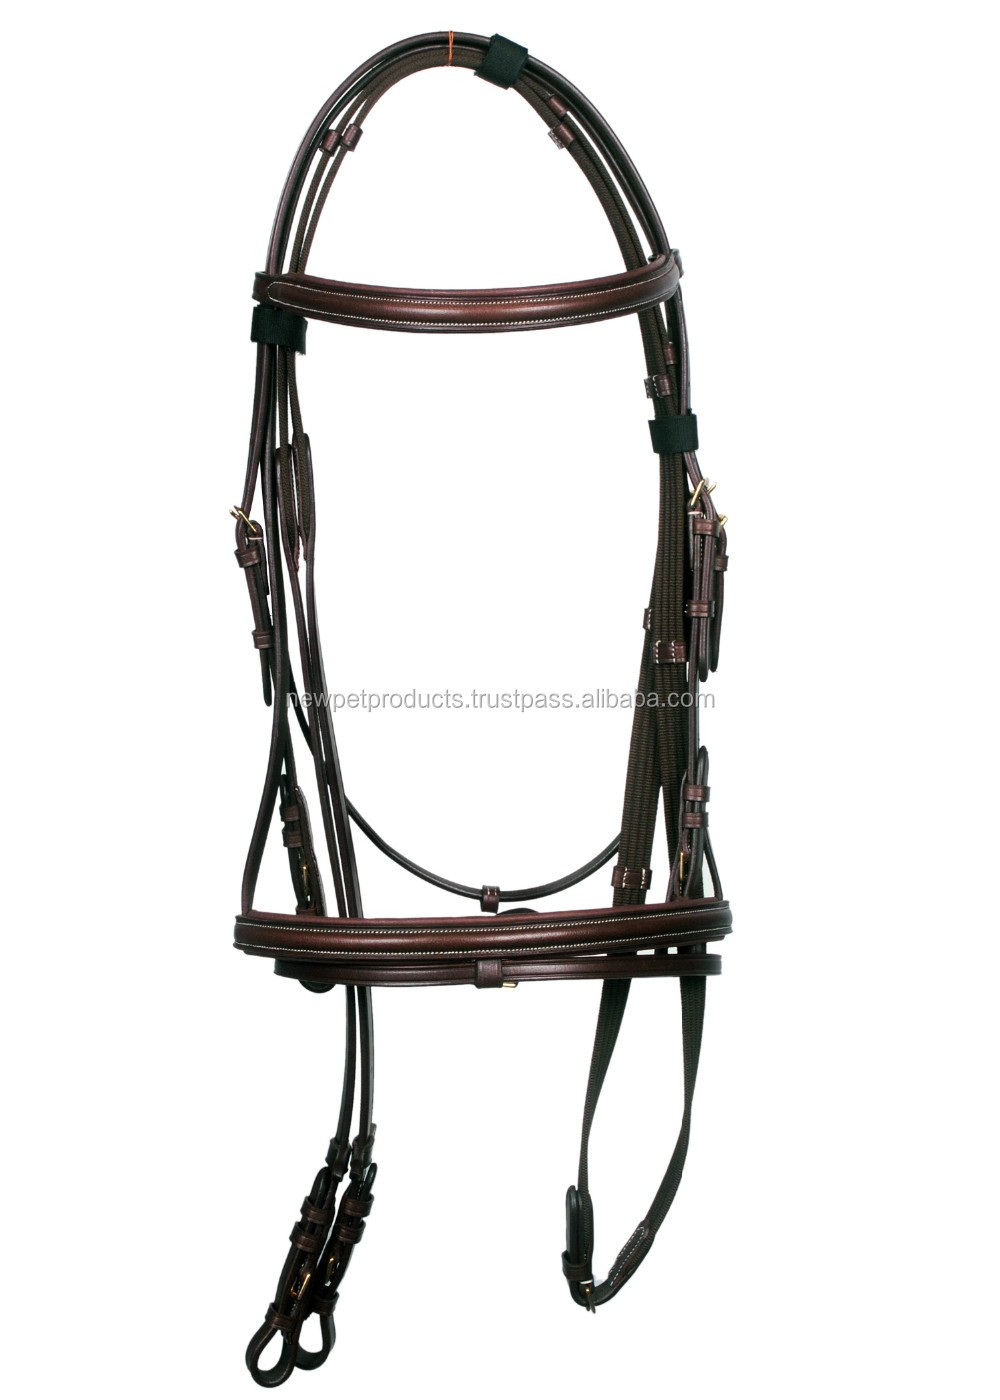 Padded Clincher Horse Bridle